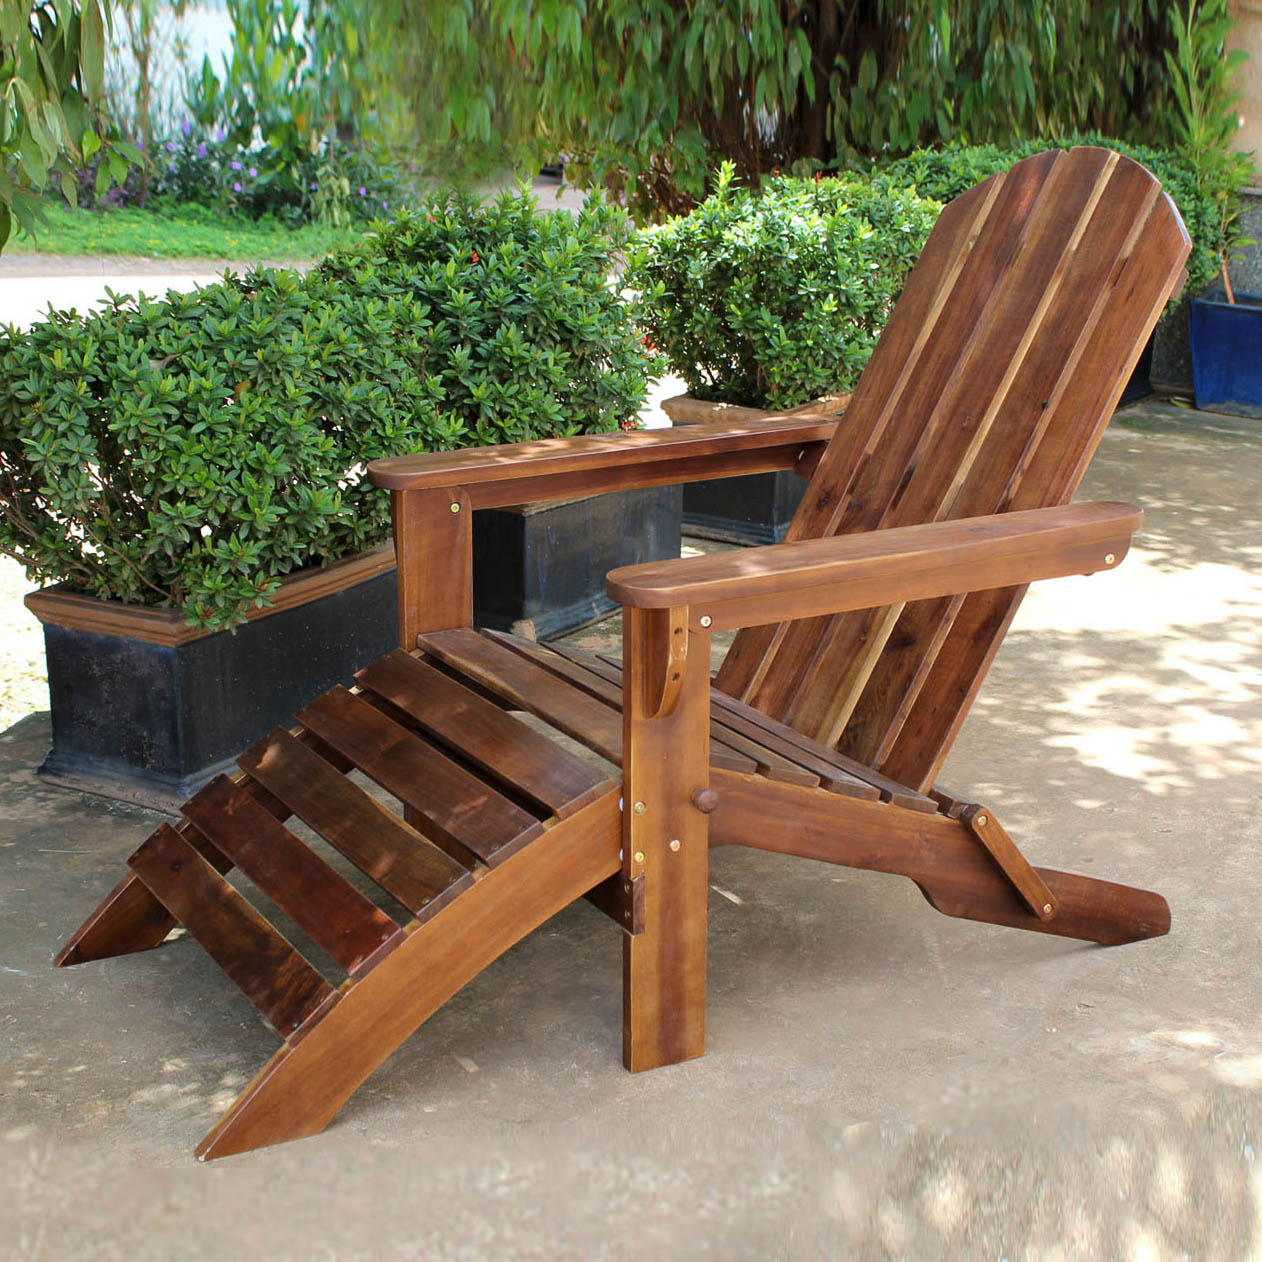 Highland Adirondack Chair with Attached Footrest